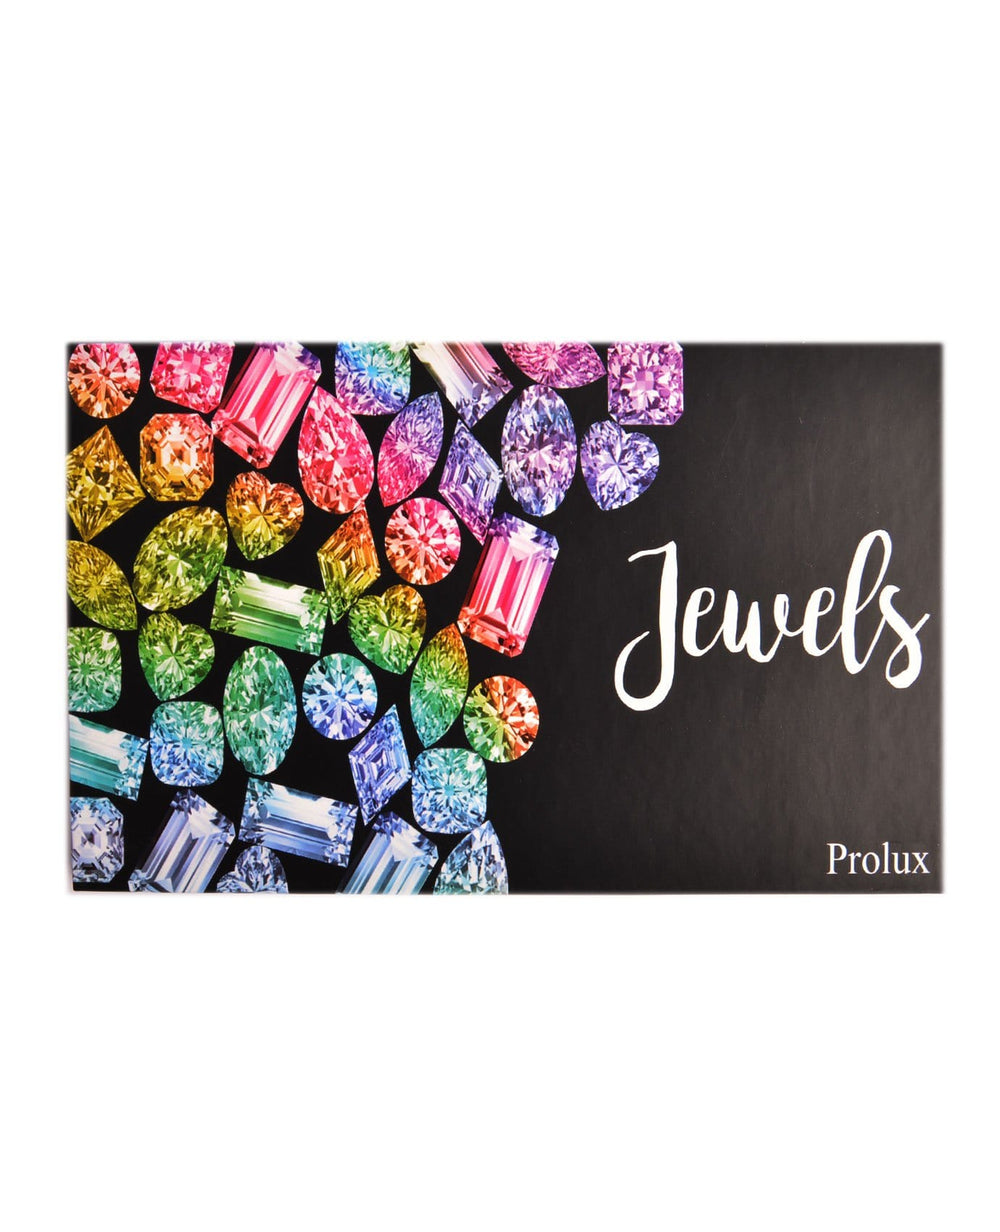 Prolux Jewels Eyeshadow Palette, COSMETIC